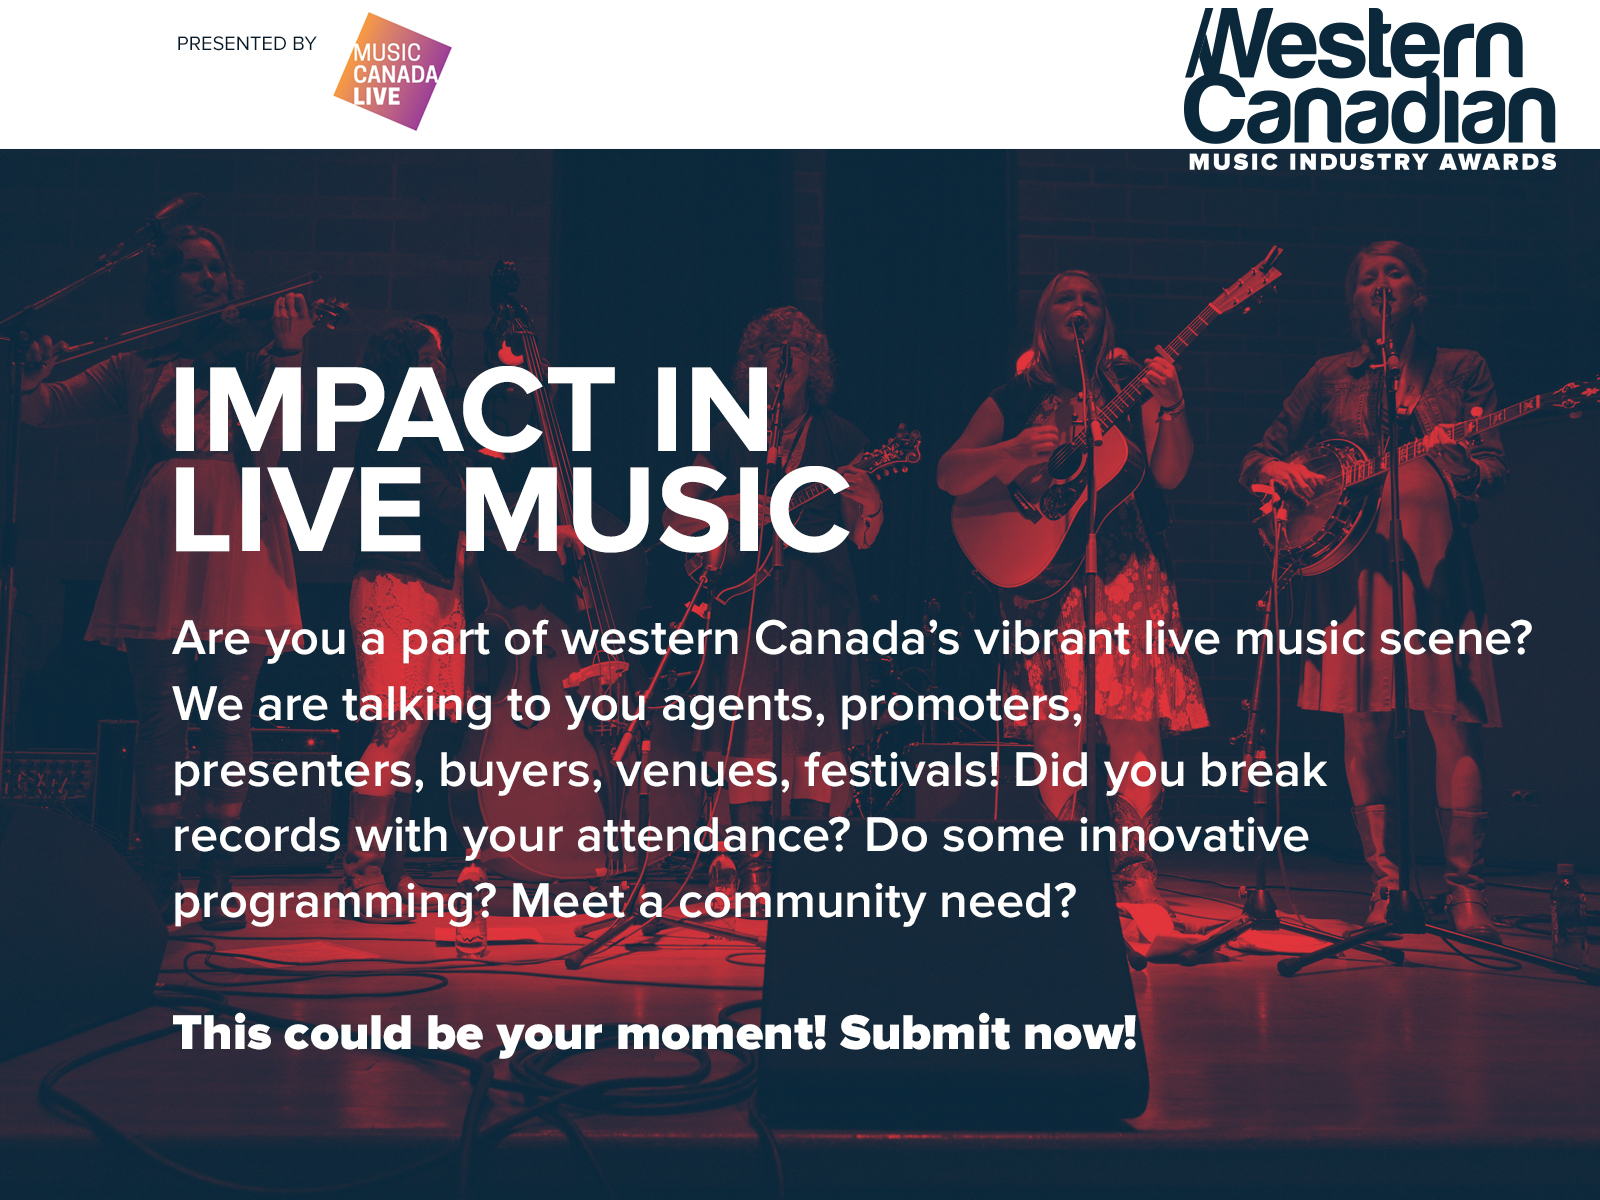 Impact in live music 2016.png